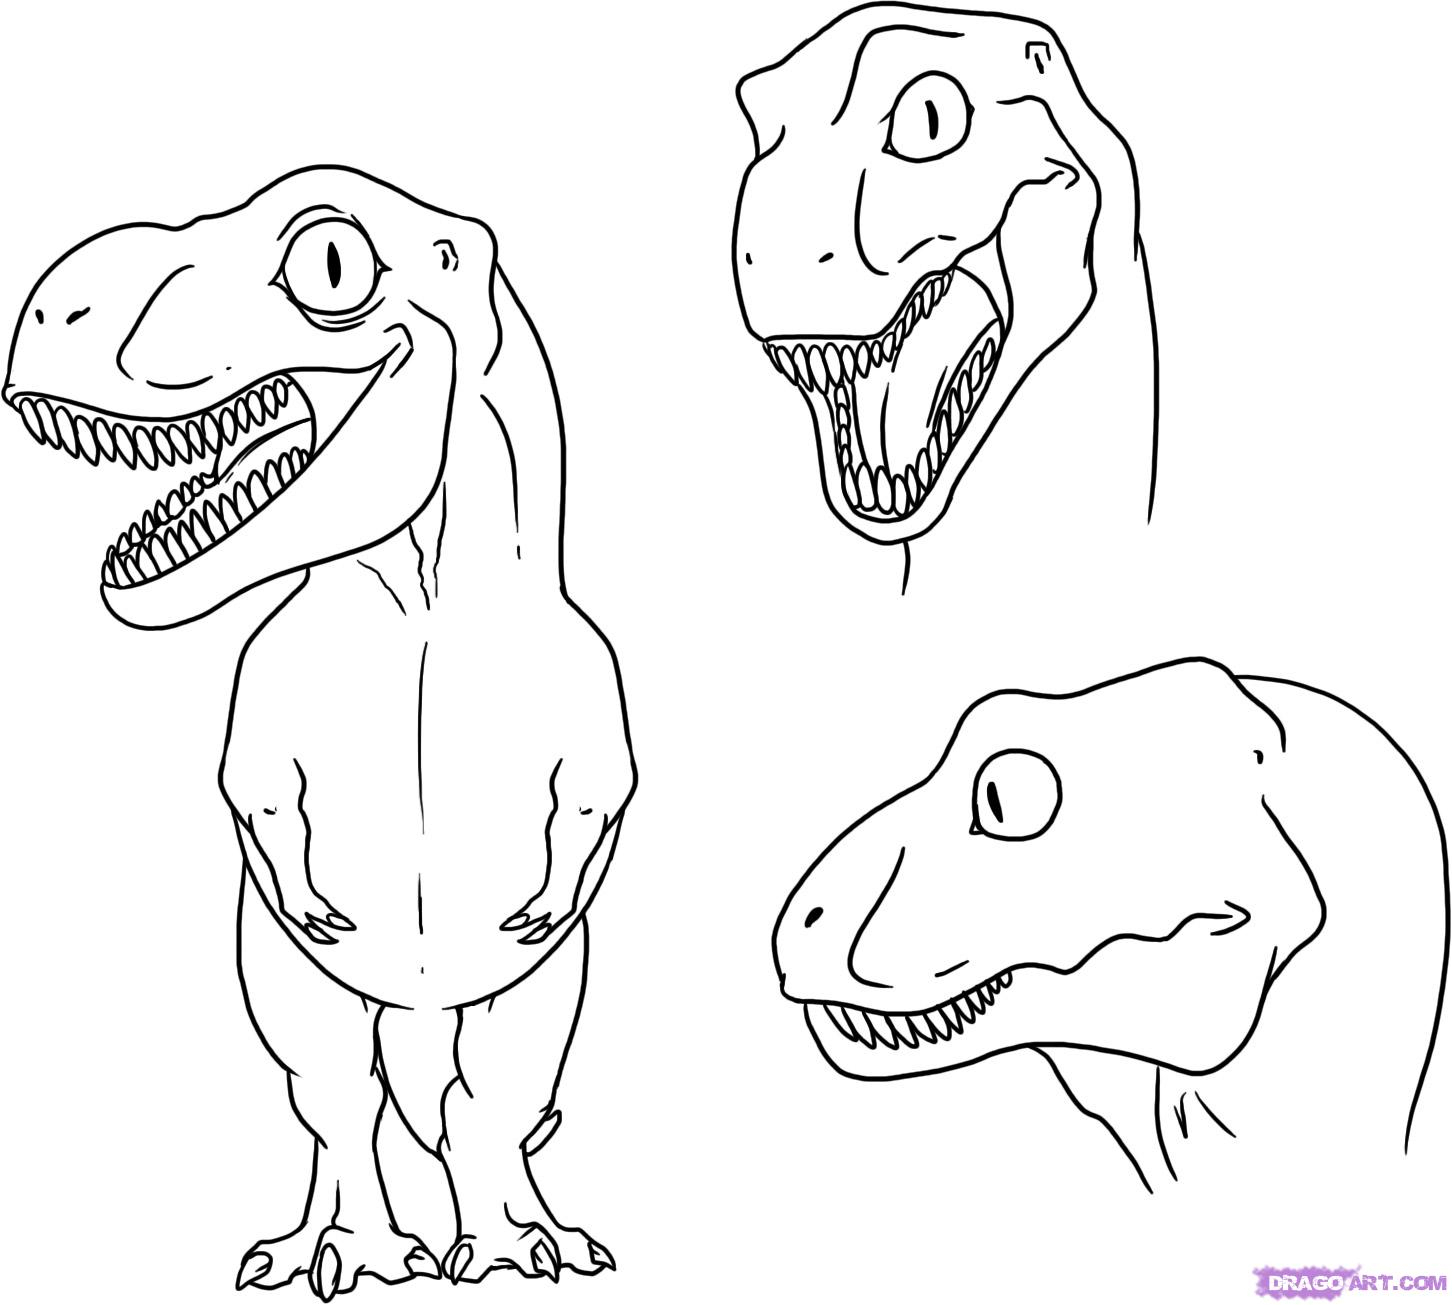 1452x1305 Drawing Dinosaurs Step By Step How To Draw A Dinosaur For Kids How